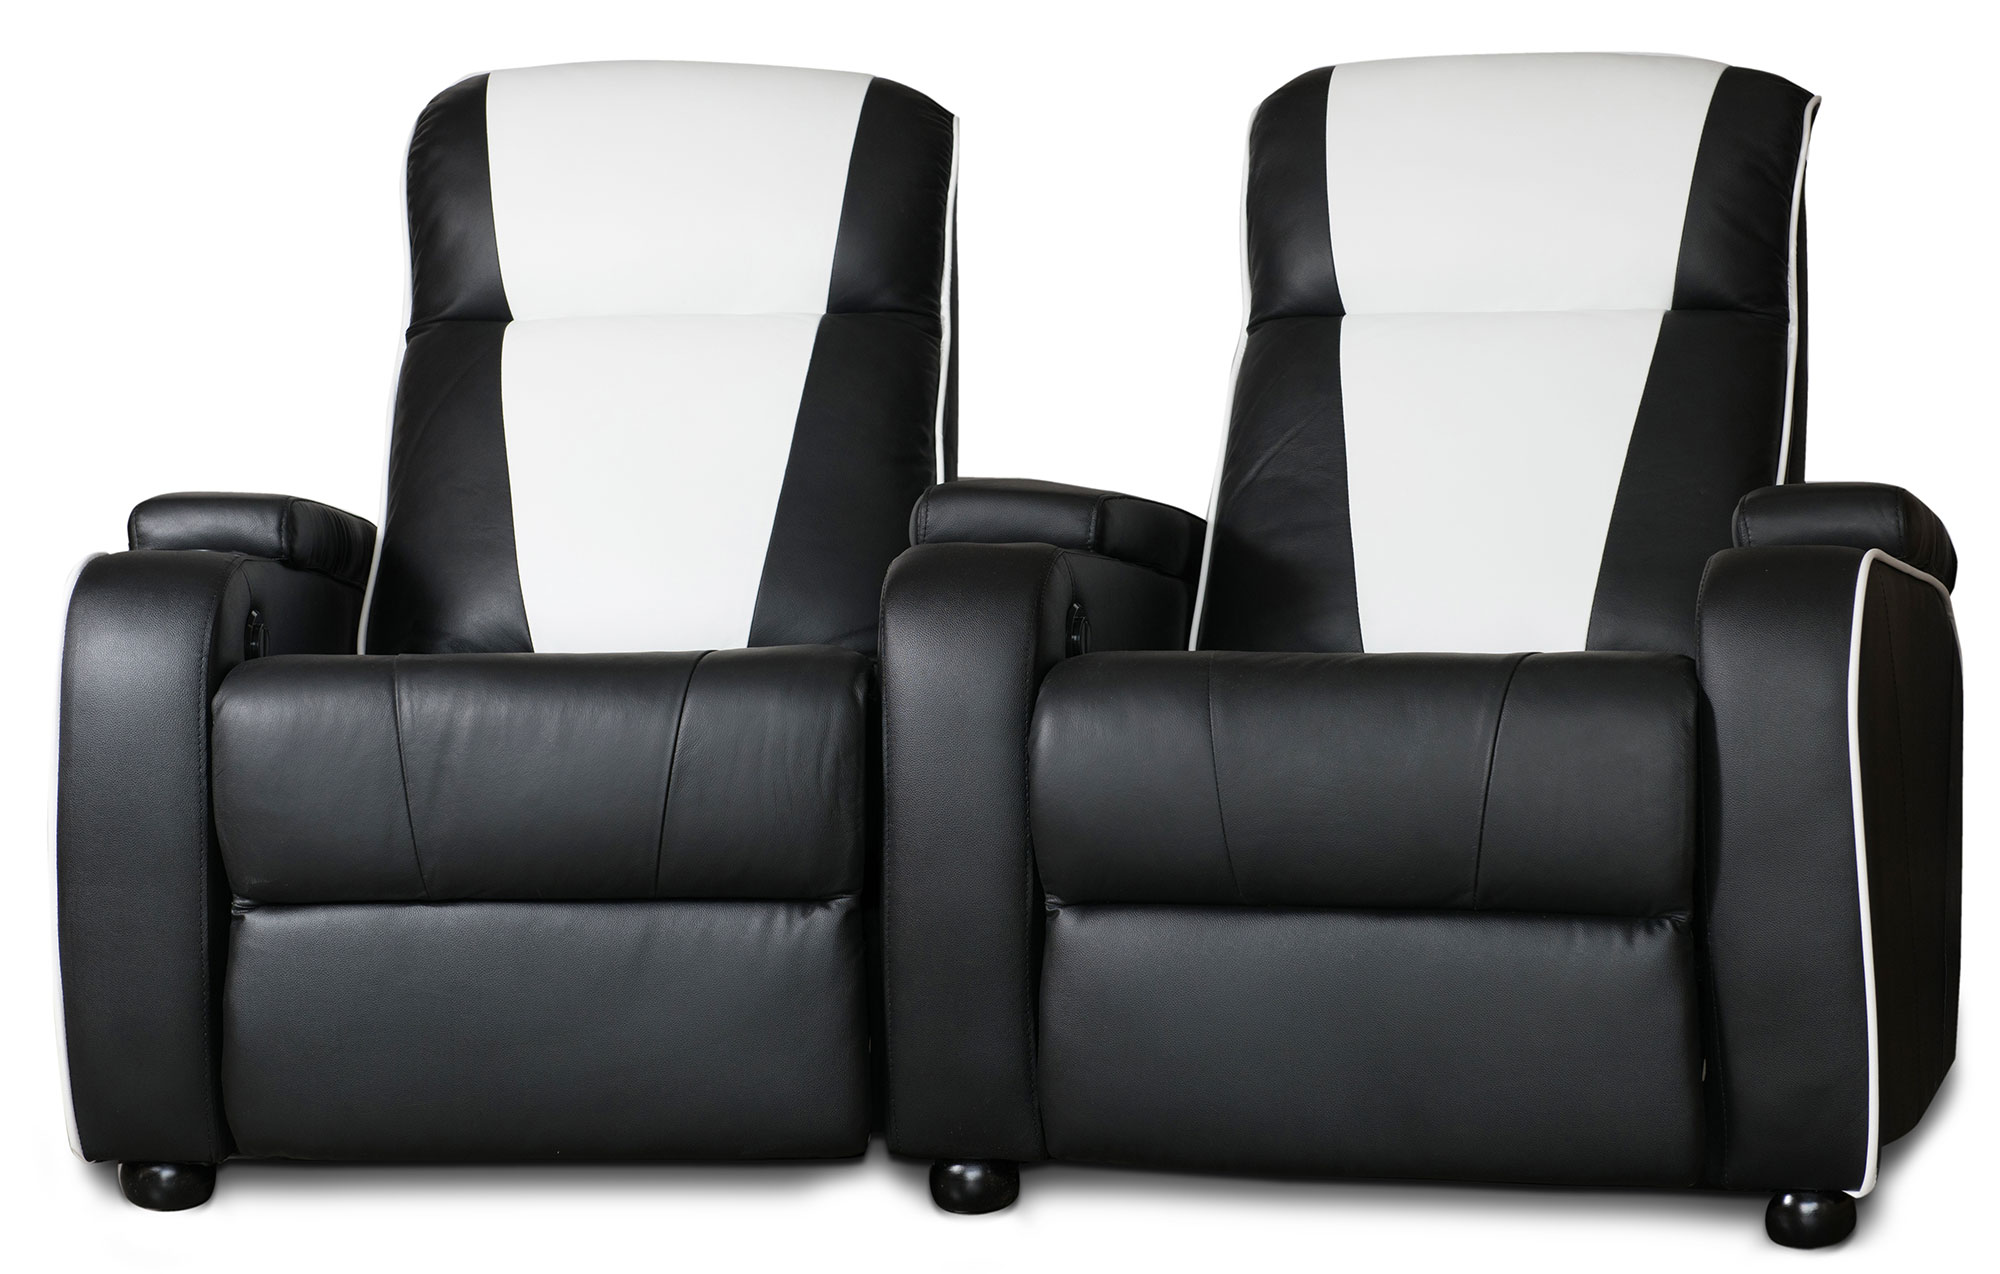 Home Cinema Sessel Metro Home Cinema Chair Double Black